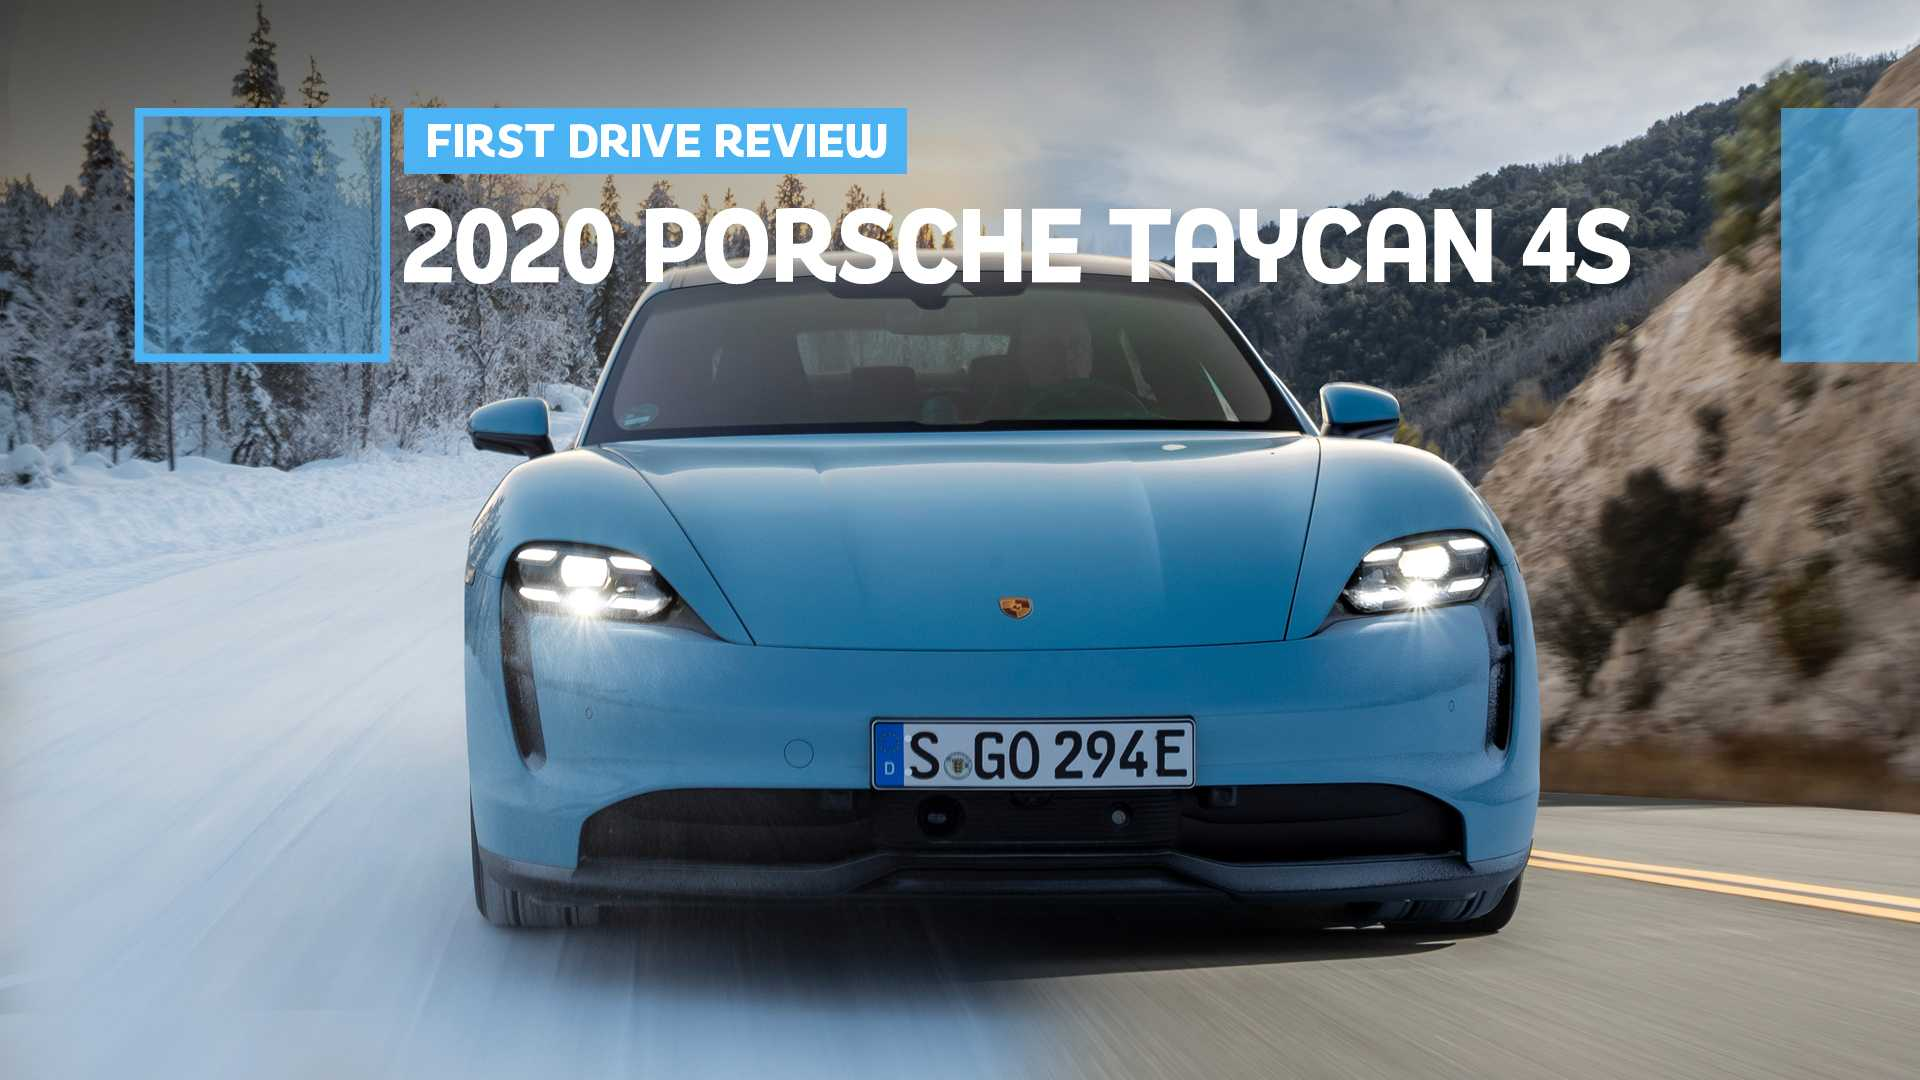 2020 Porsche Taycan 4s First Drive Canyon Carver Winter Warrior